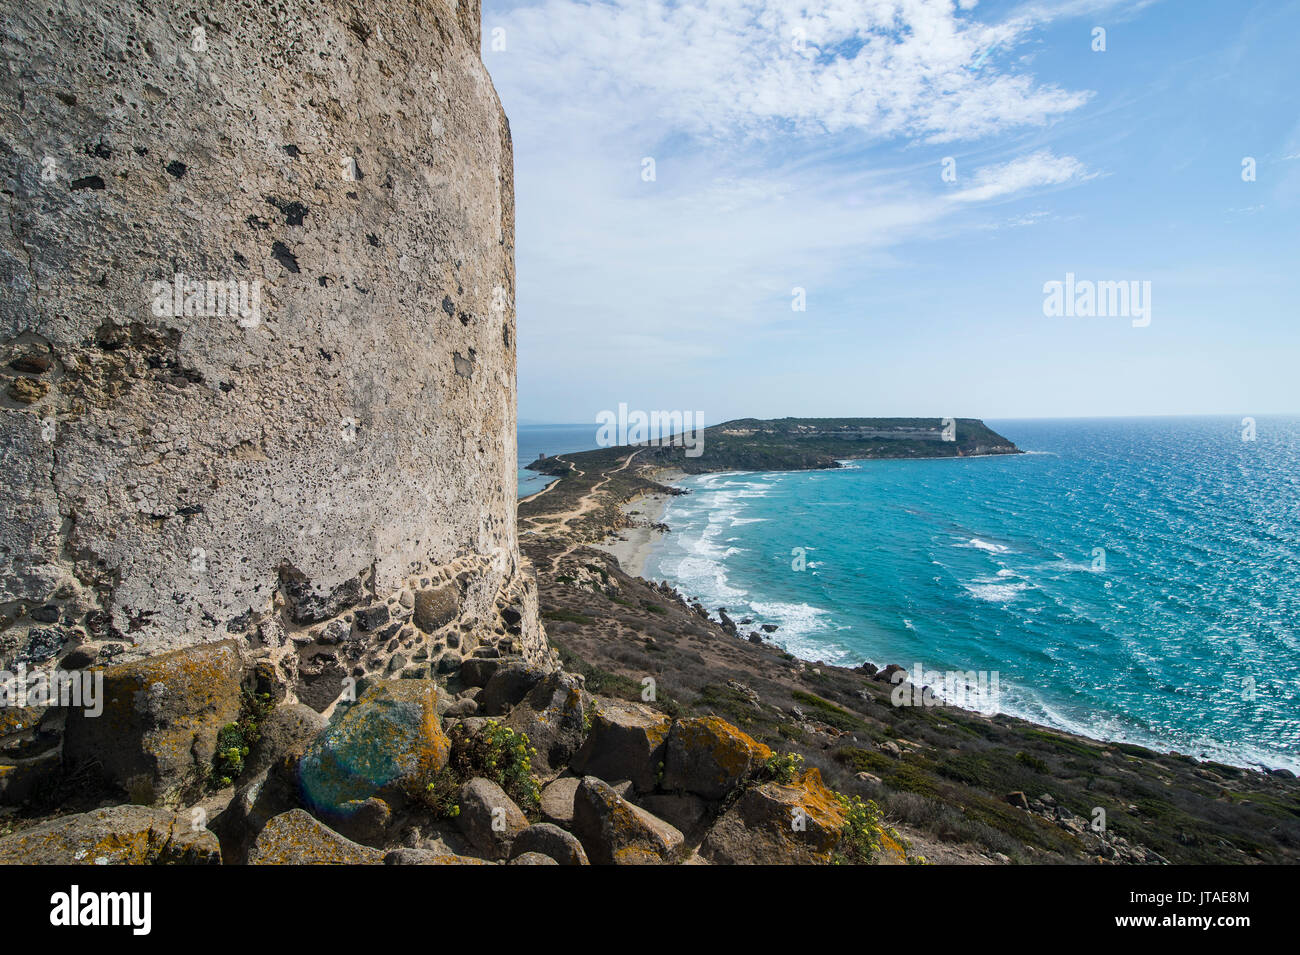 View over Cape San Marcos and San Giovanni tower, Tharros, Sardinia, Italy, Mediterranean, Europe - Stock Image